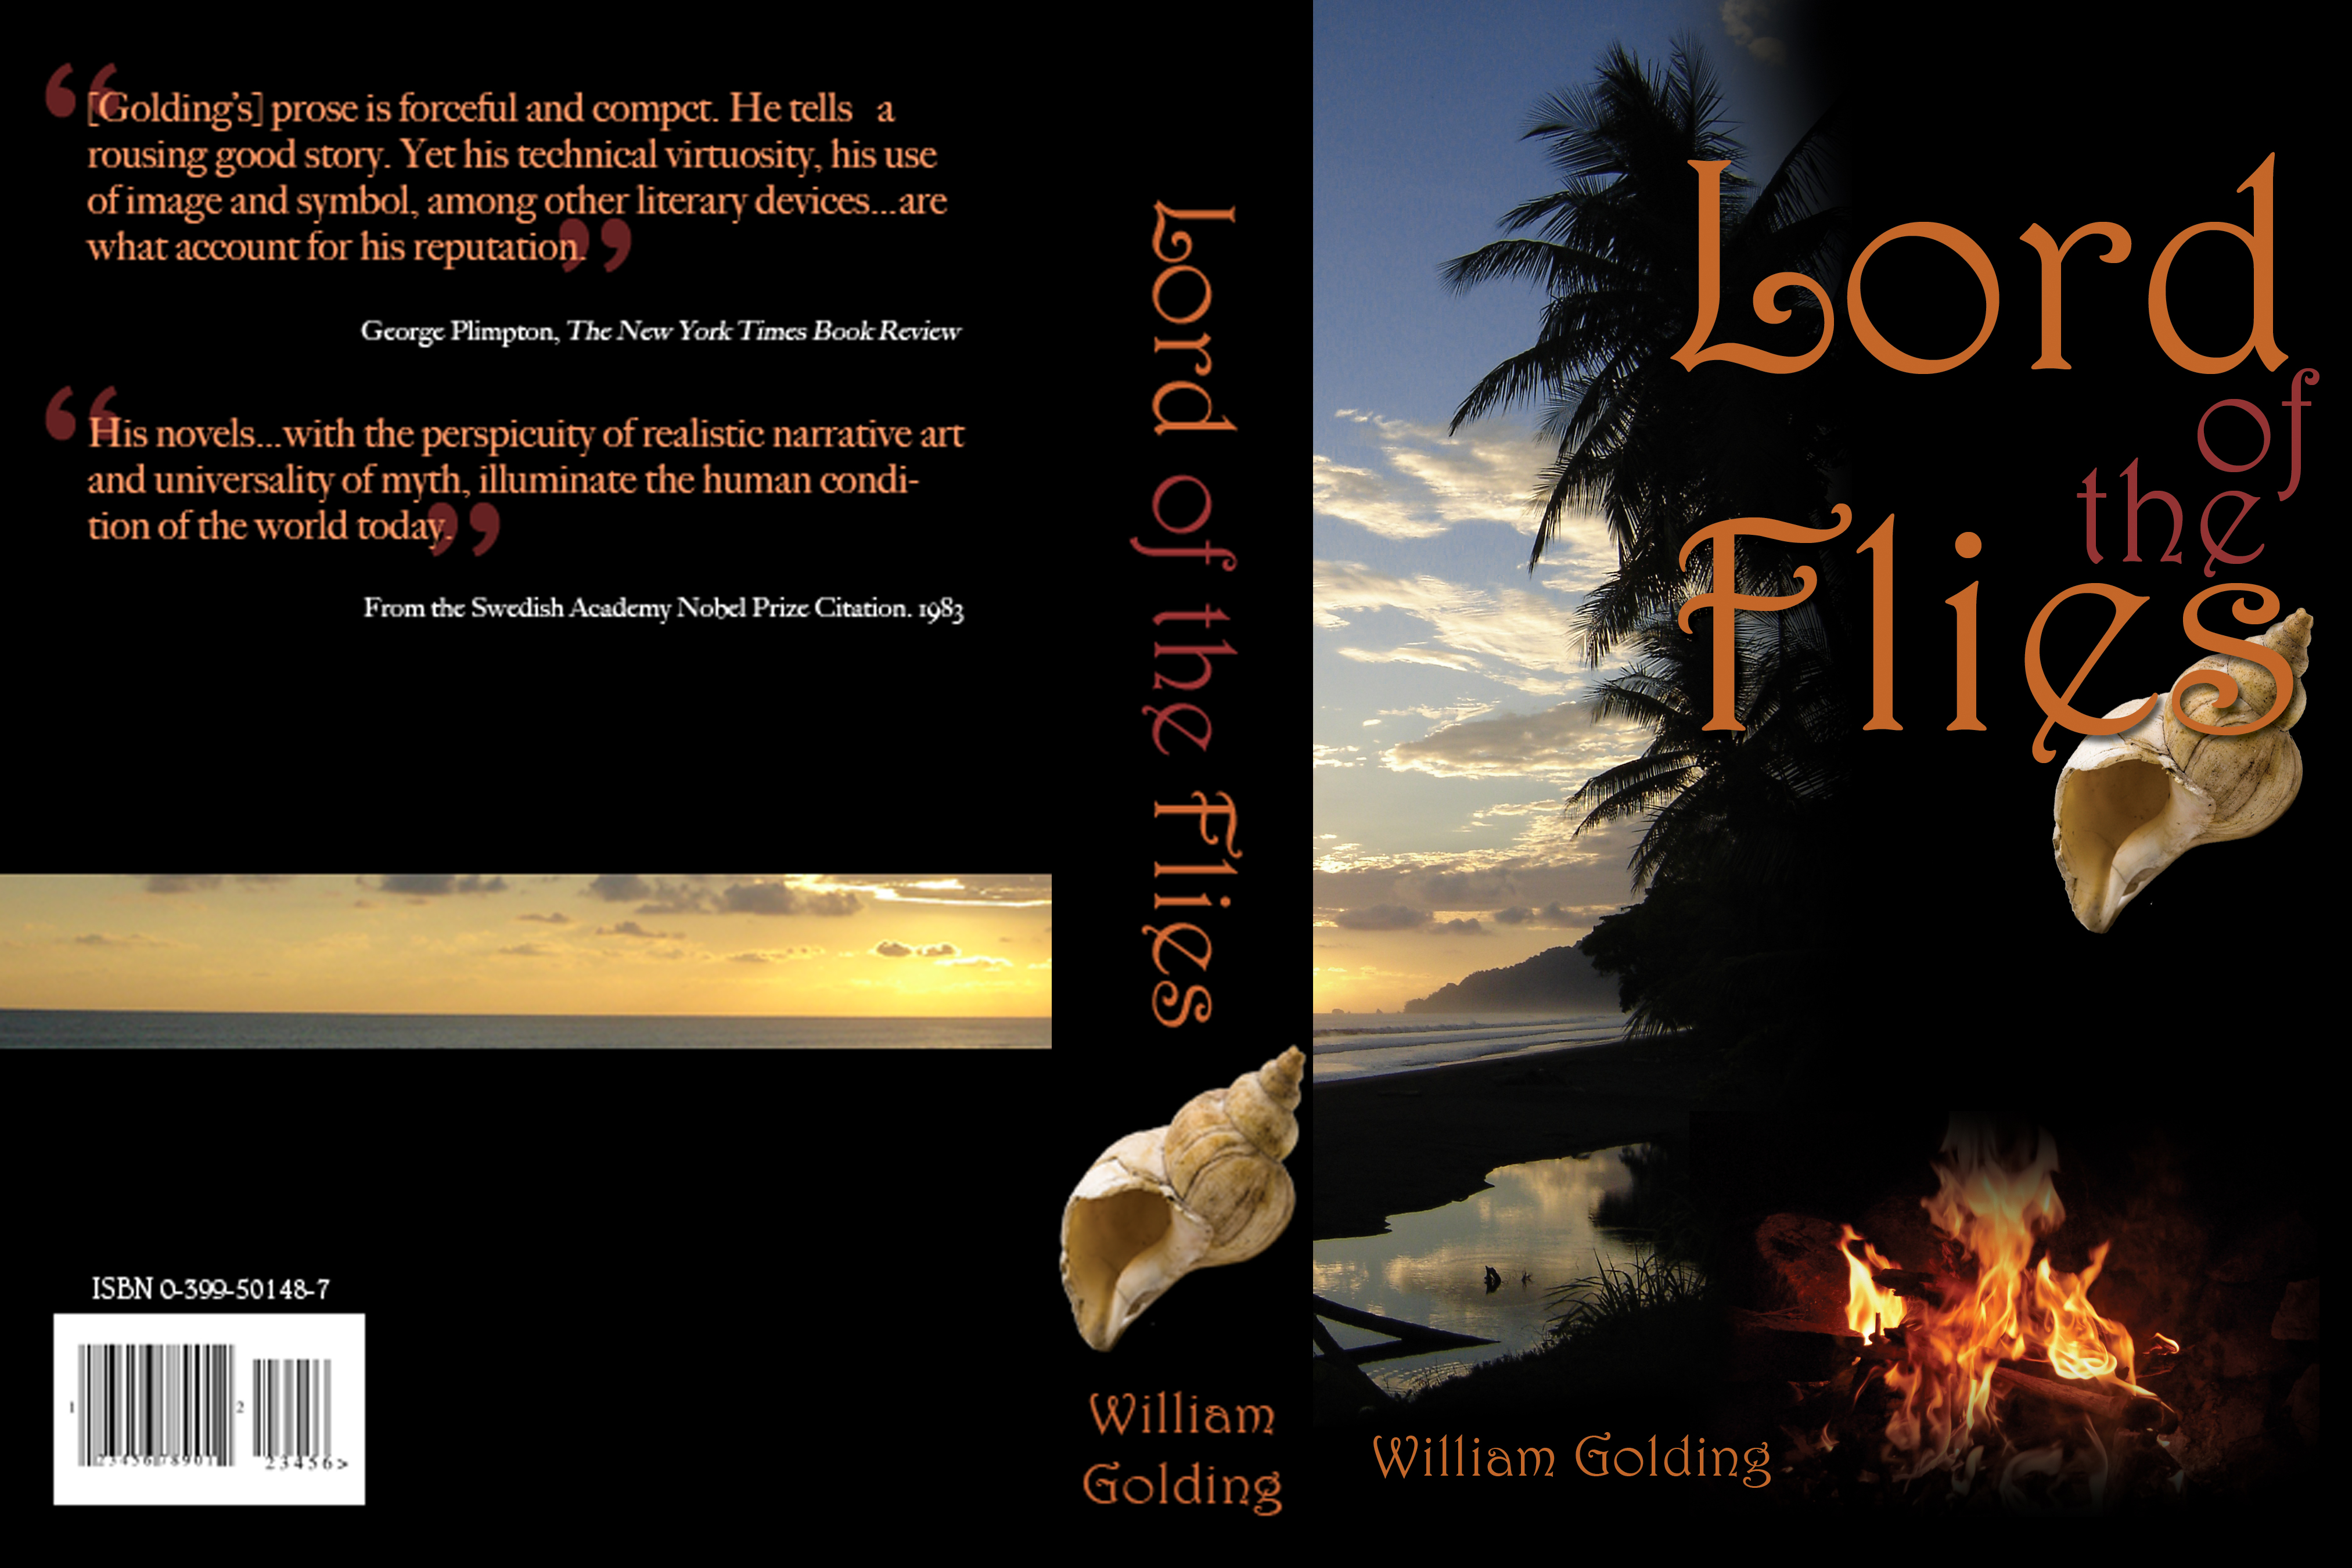 the themes of civilization and savagery in lord of the flies a novel by william golding Civilization and savagery in lord of the flies essay sample the war between civilization and savagery has been a conflict in the human mind since the beginning, but no work of literature illustrates this battle better than lord of the flies by william golding.